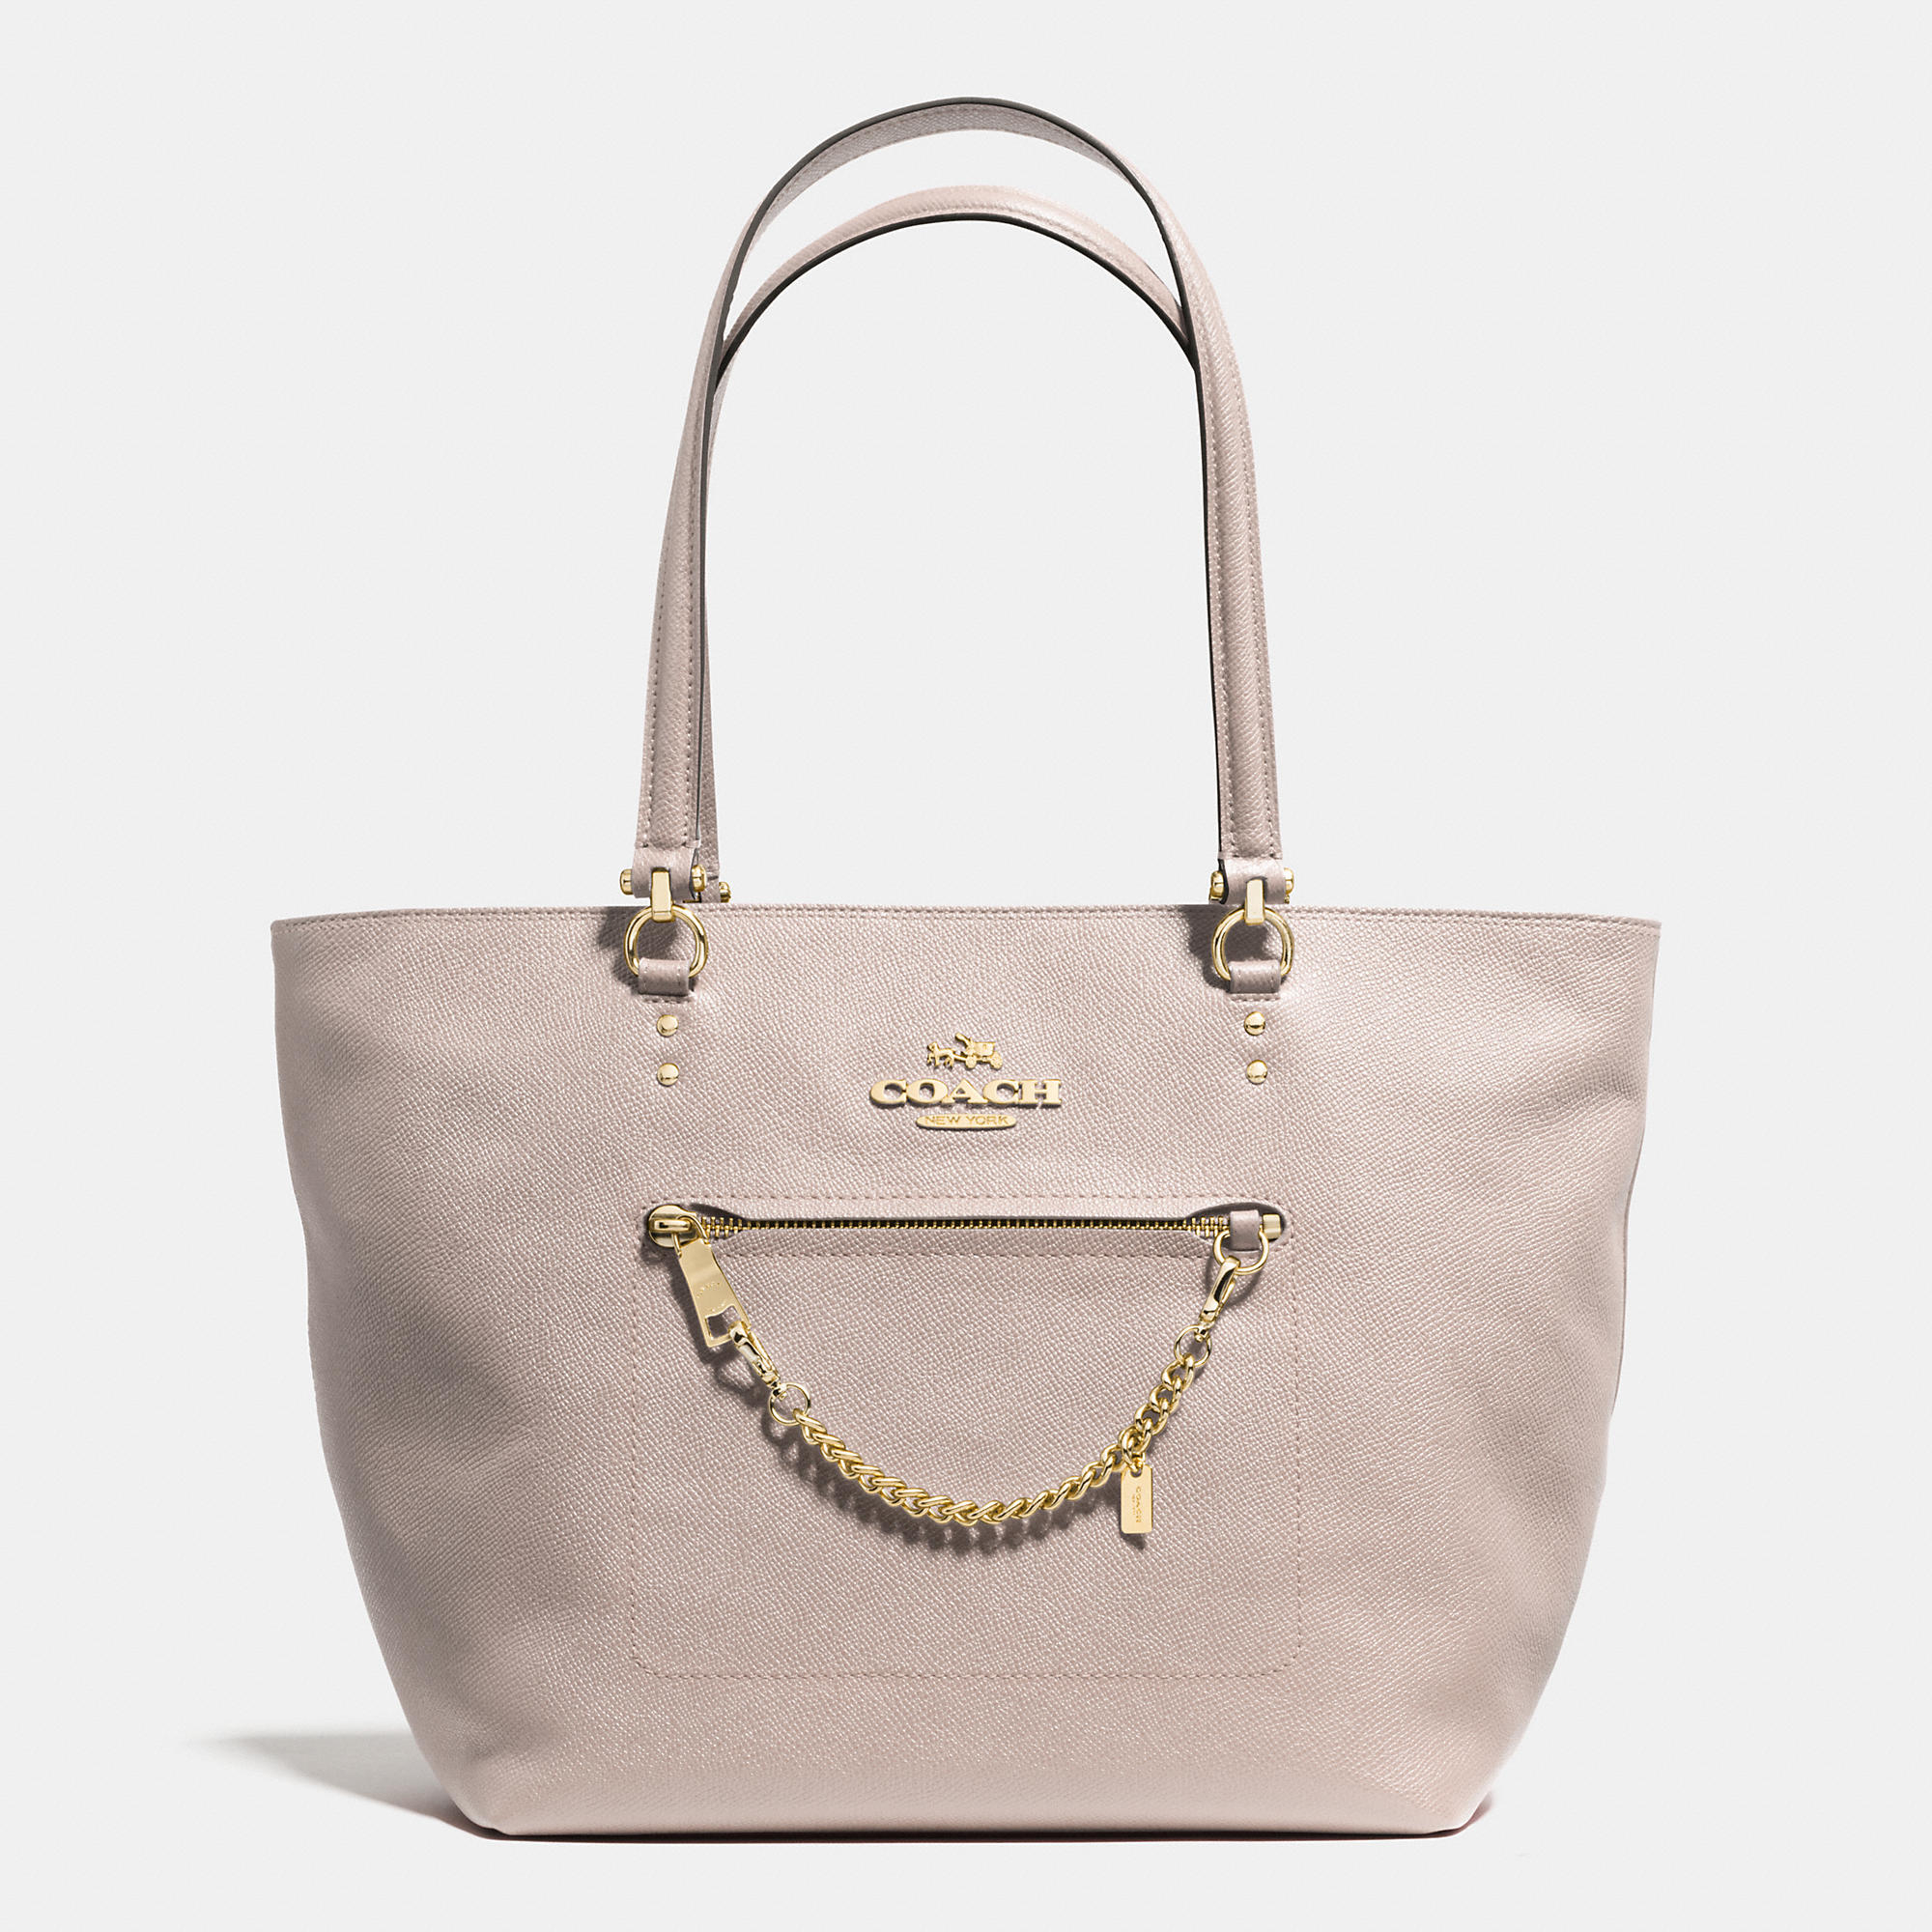 ab71e4693bea Lyst - Coach Town Car Tote In Crossgrain Leather in Natural